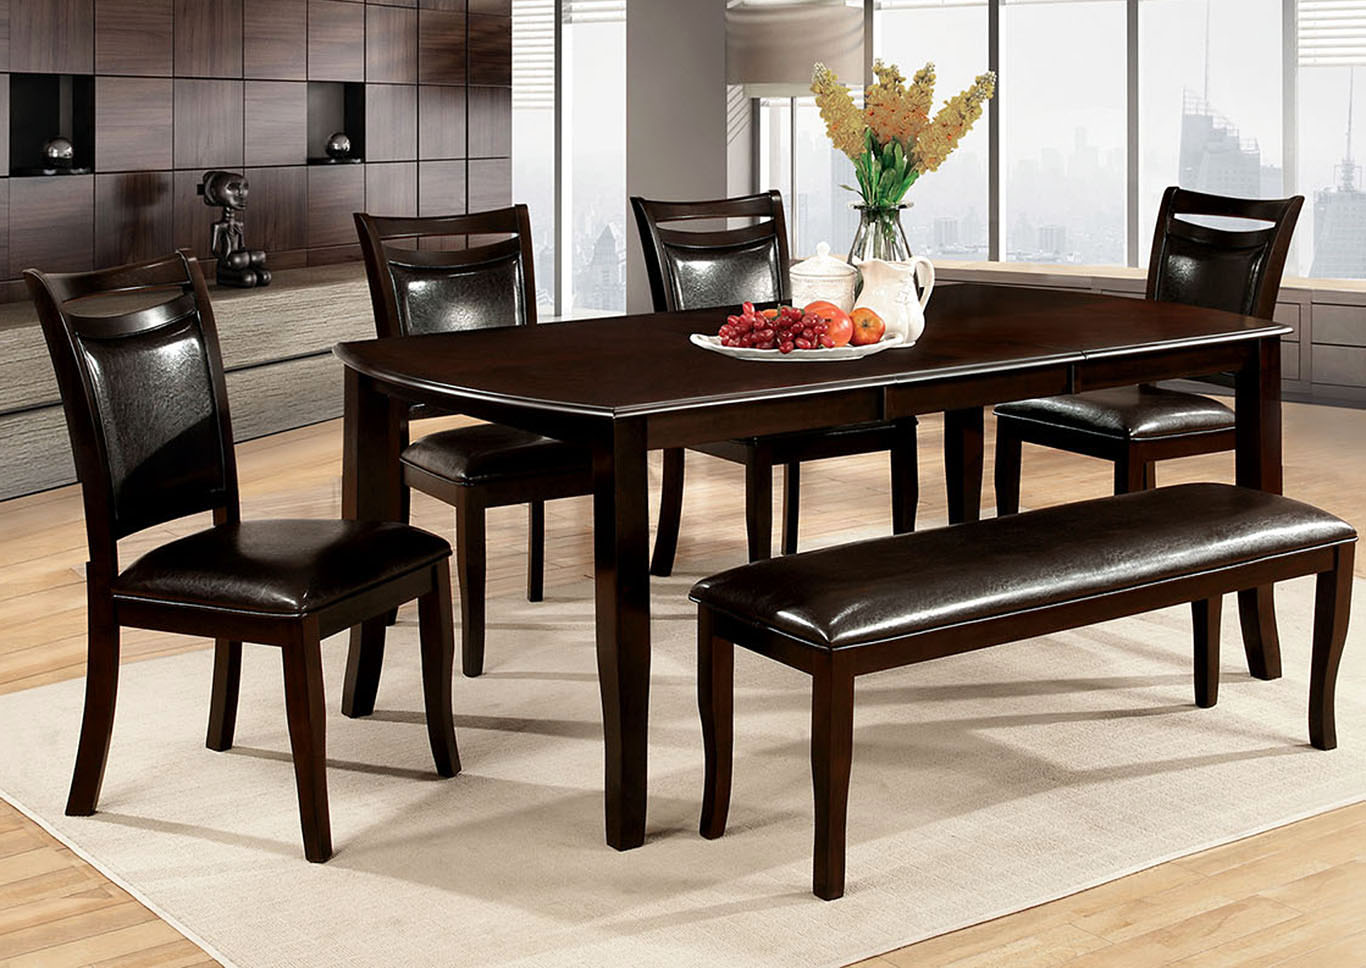 Woodside Ll Espresso Counter Height BenchFurniture Of America